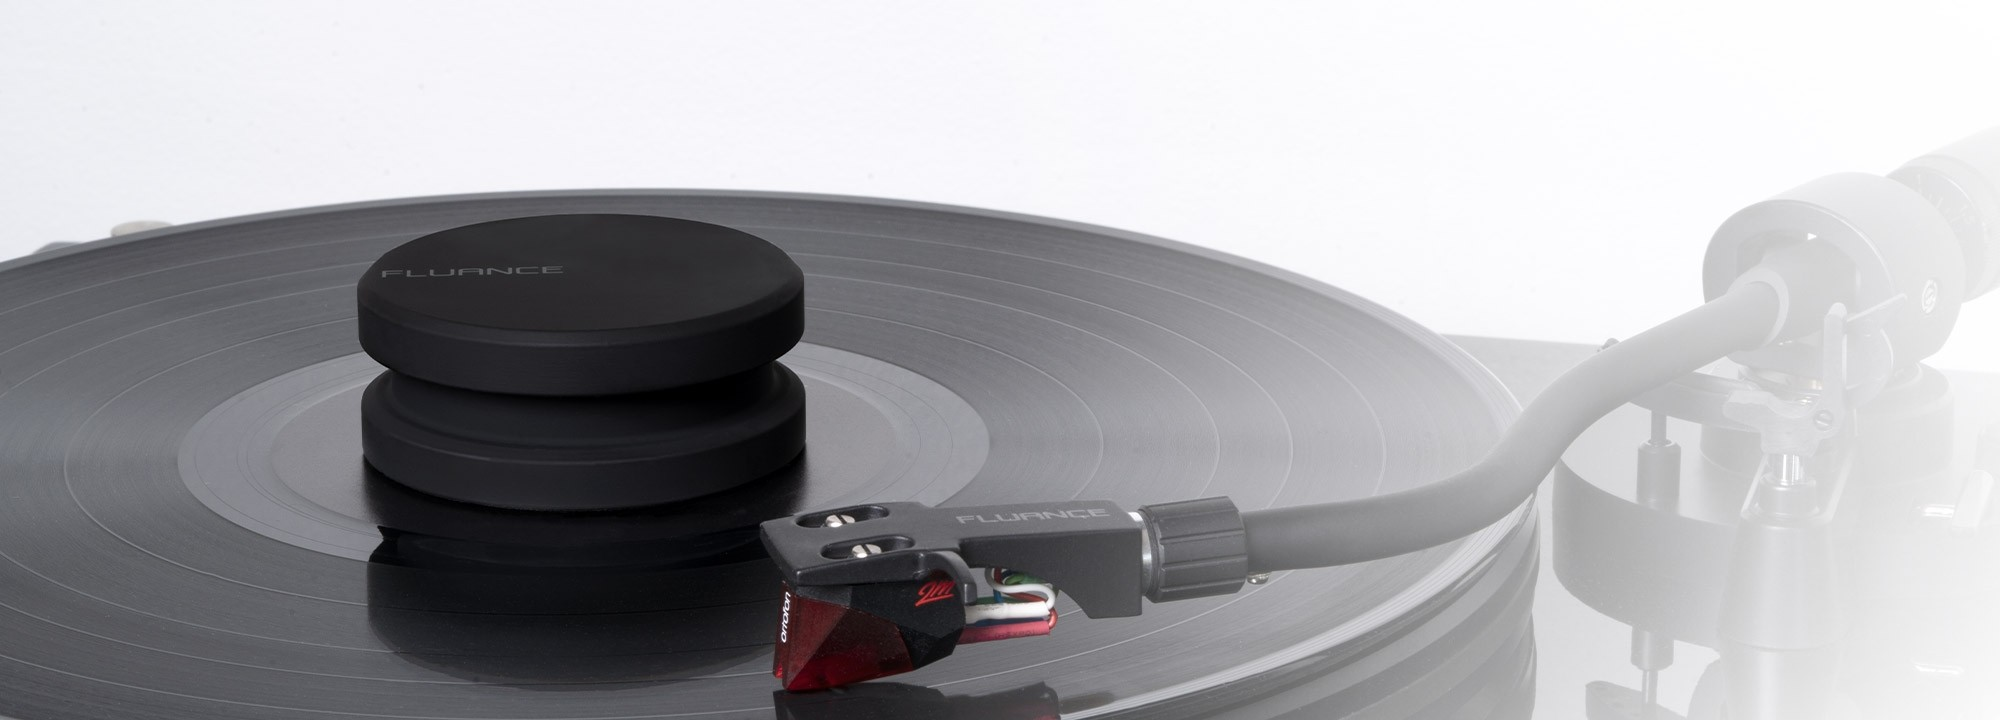 Vinyl Record and Stylus Anti-static Carbon Fiber Brushes with Record Weight - Lifestyle Desktop